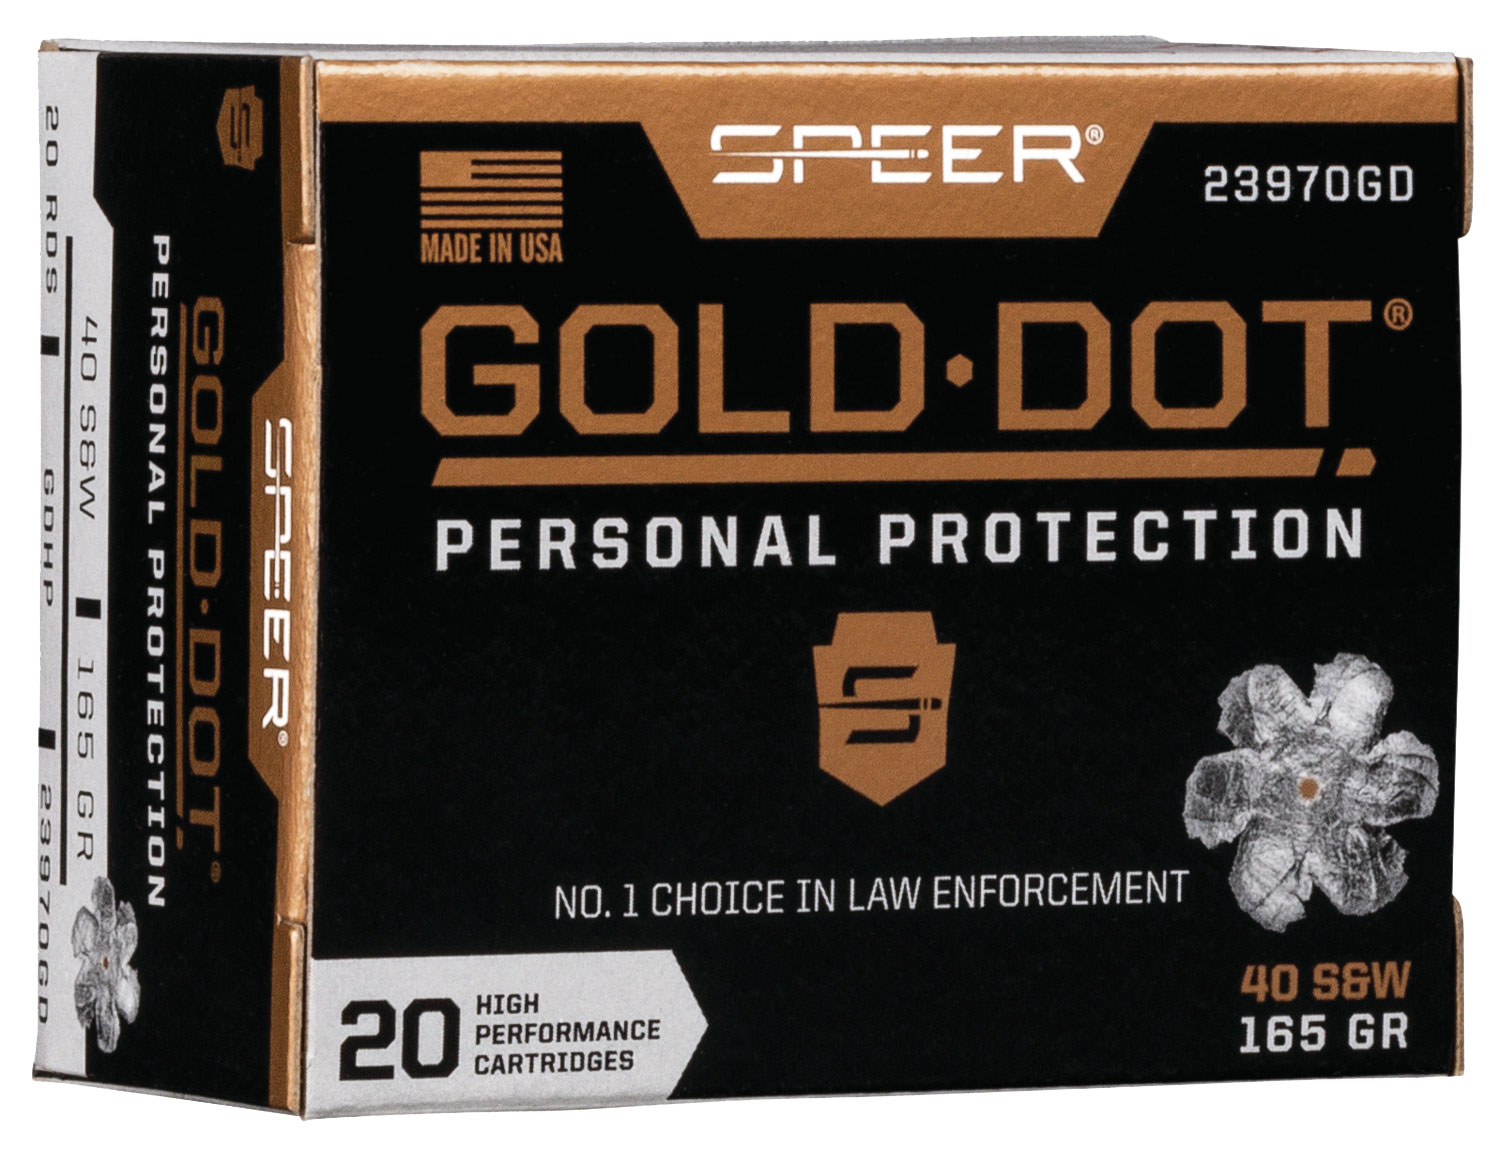 Speer Ammo 23970GD Gold Dot Personal Protection 40 S&W 165 gr Hollow Point